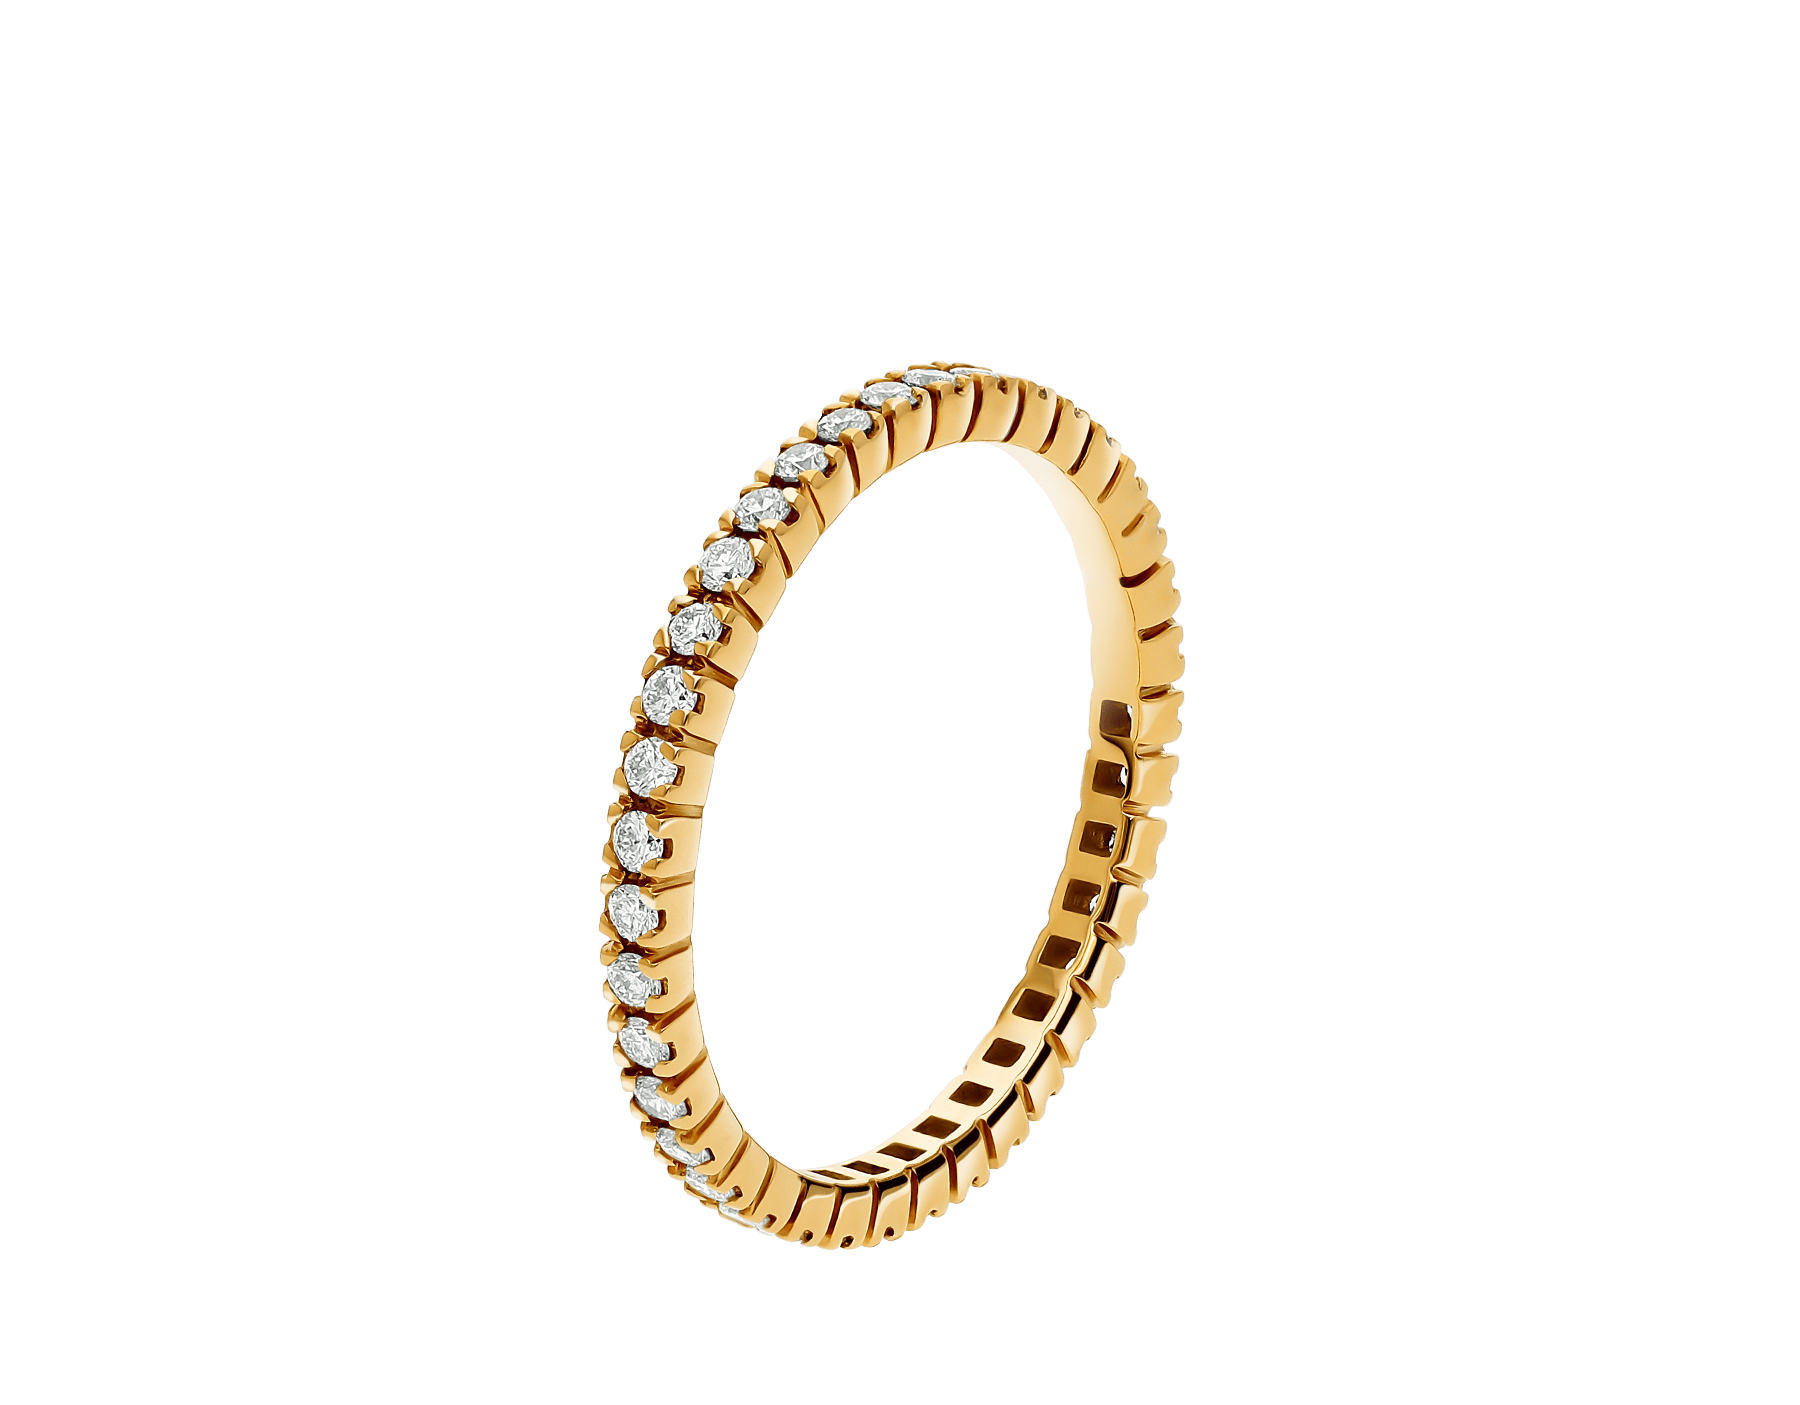 Eternity Band in thin size in 18 kt yellow gold with round brilliant cut diamonds AN856429 image 1